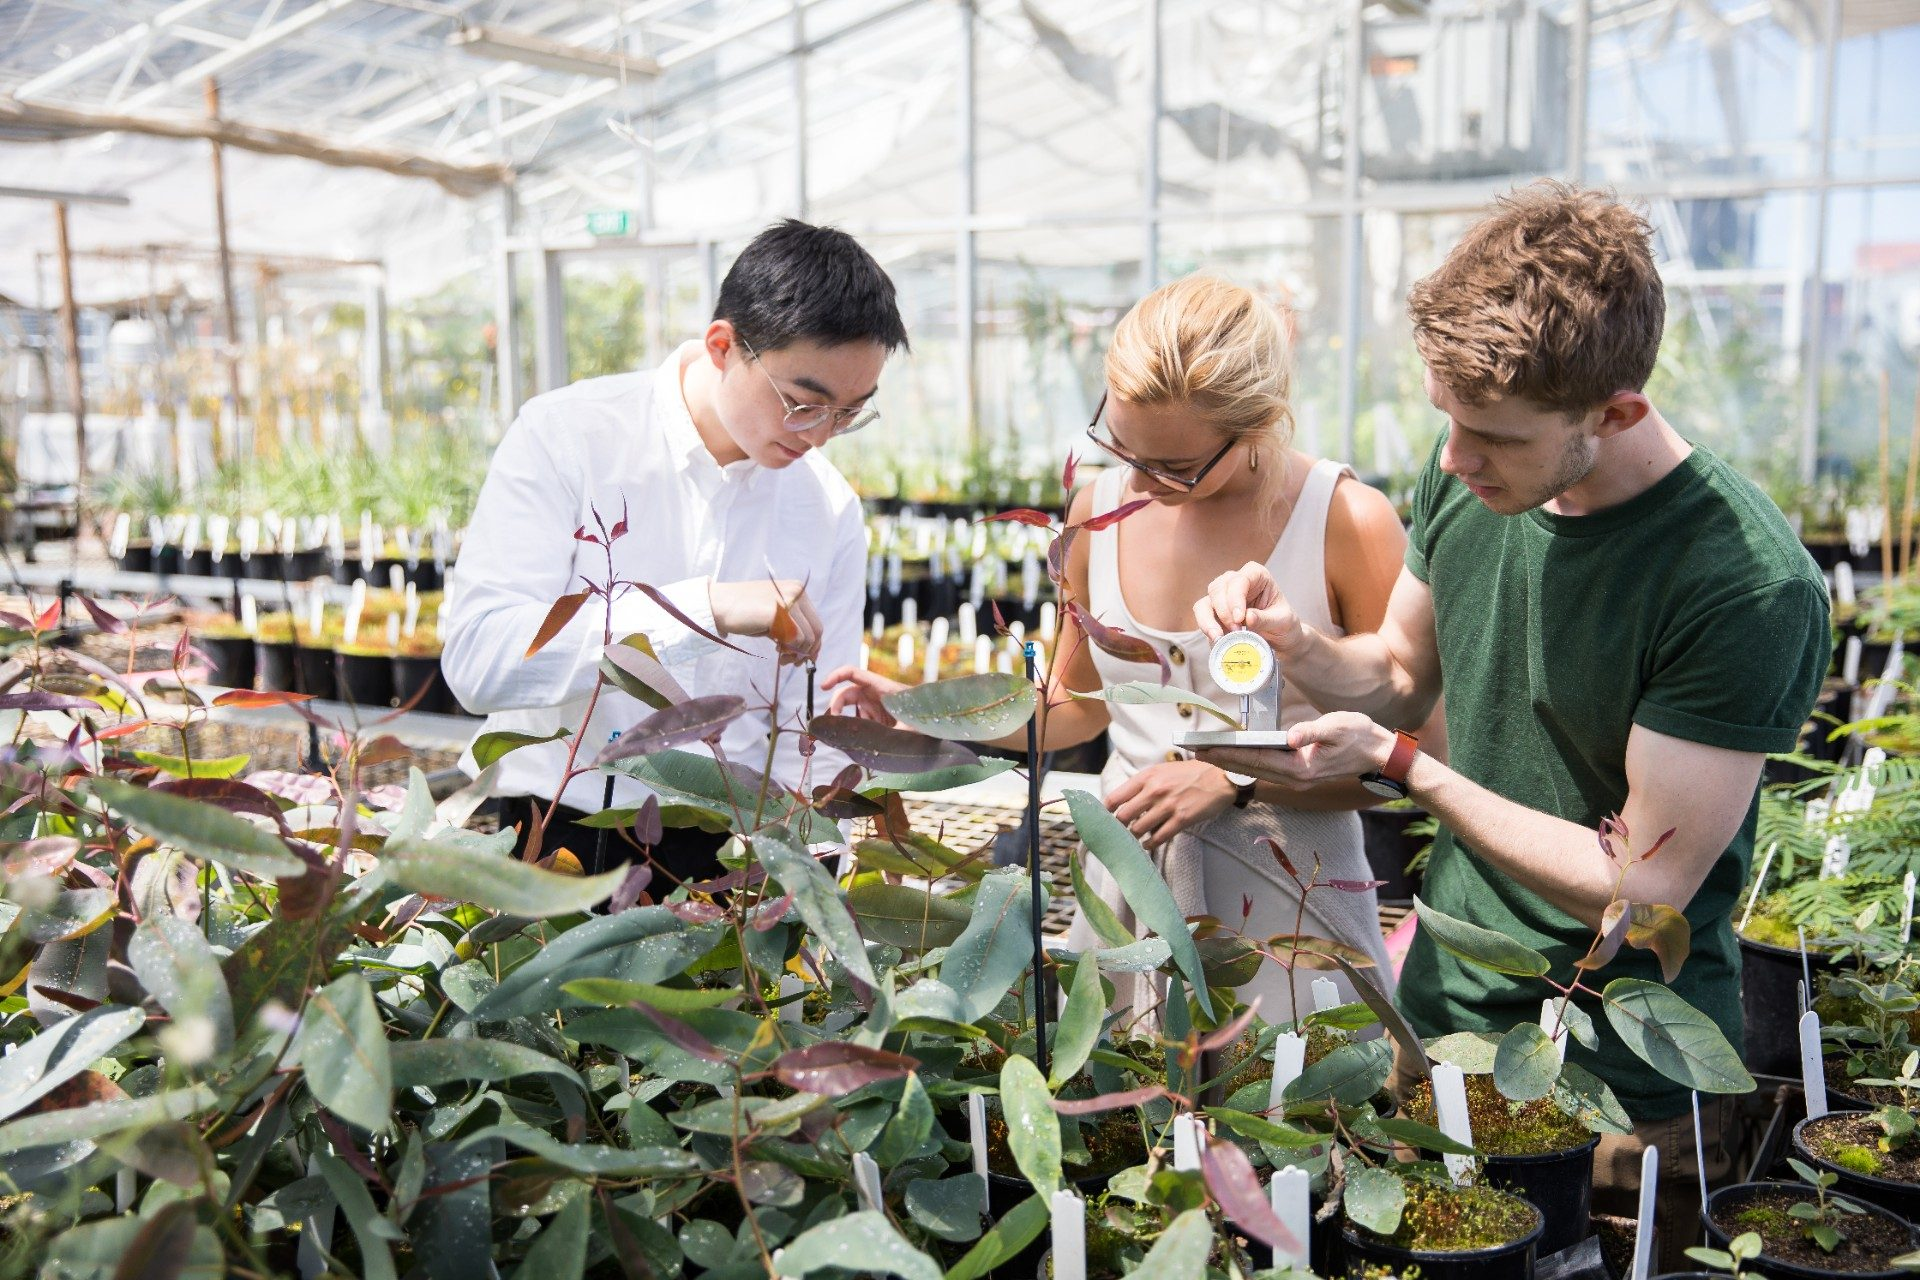 Photograph of science students in a garden centre